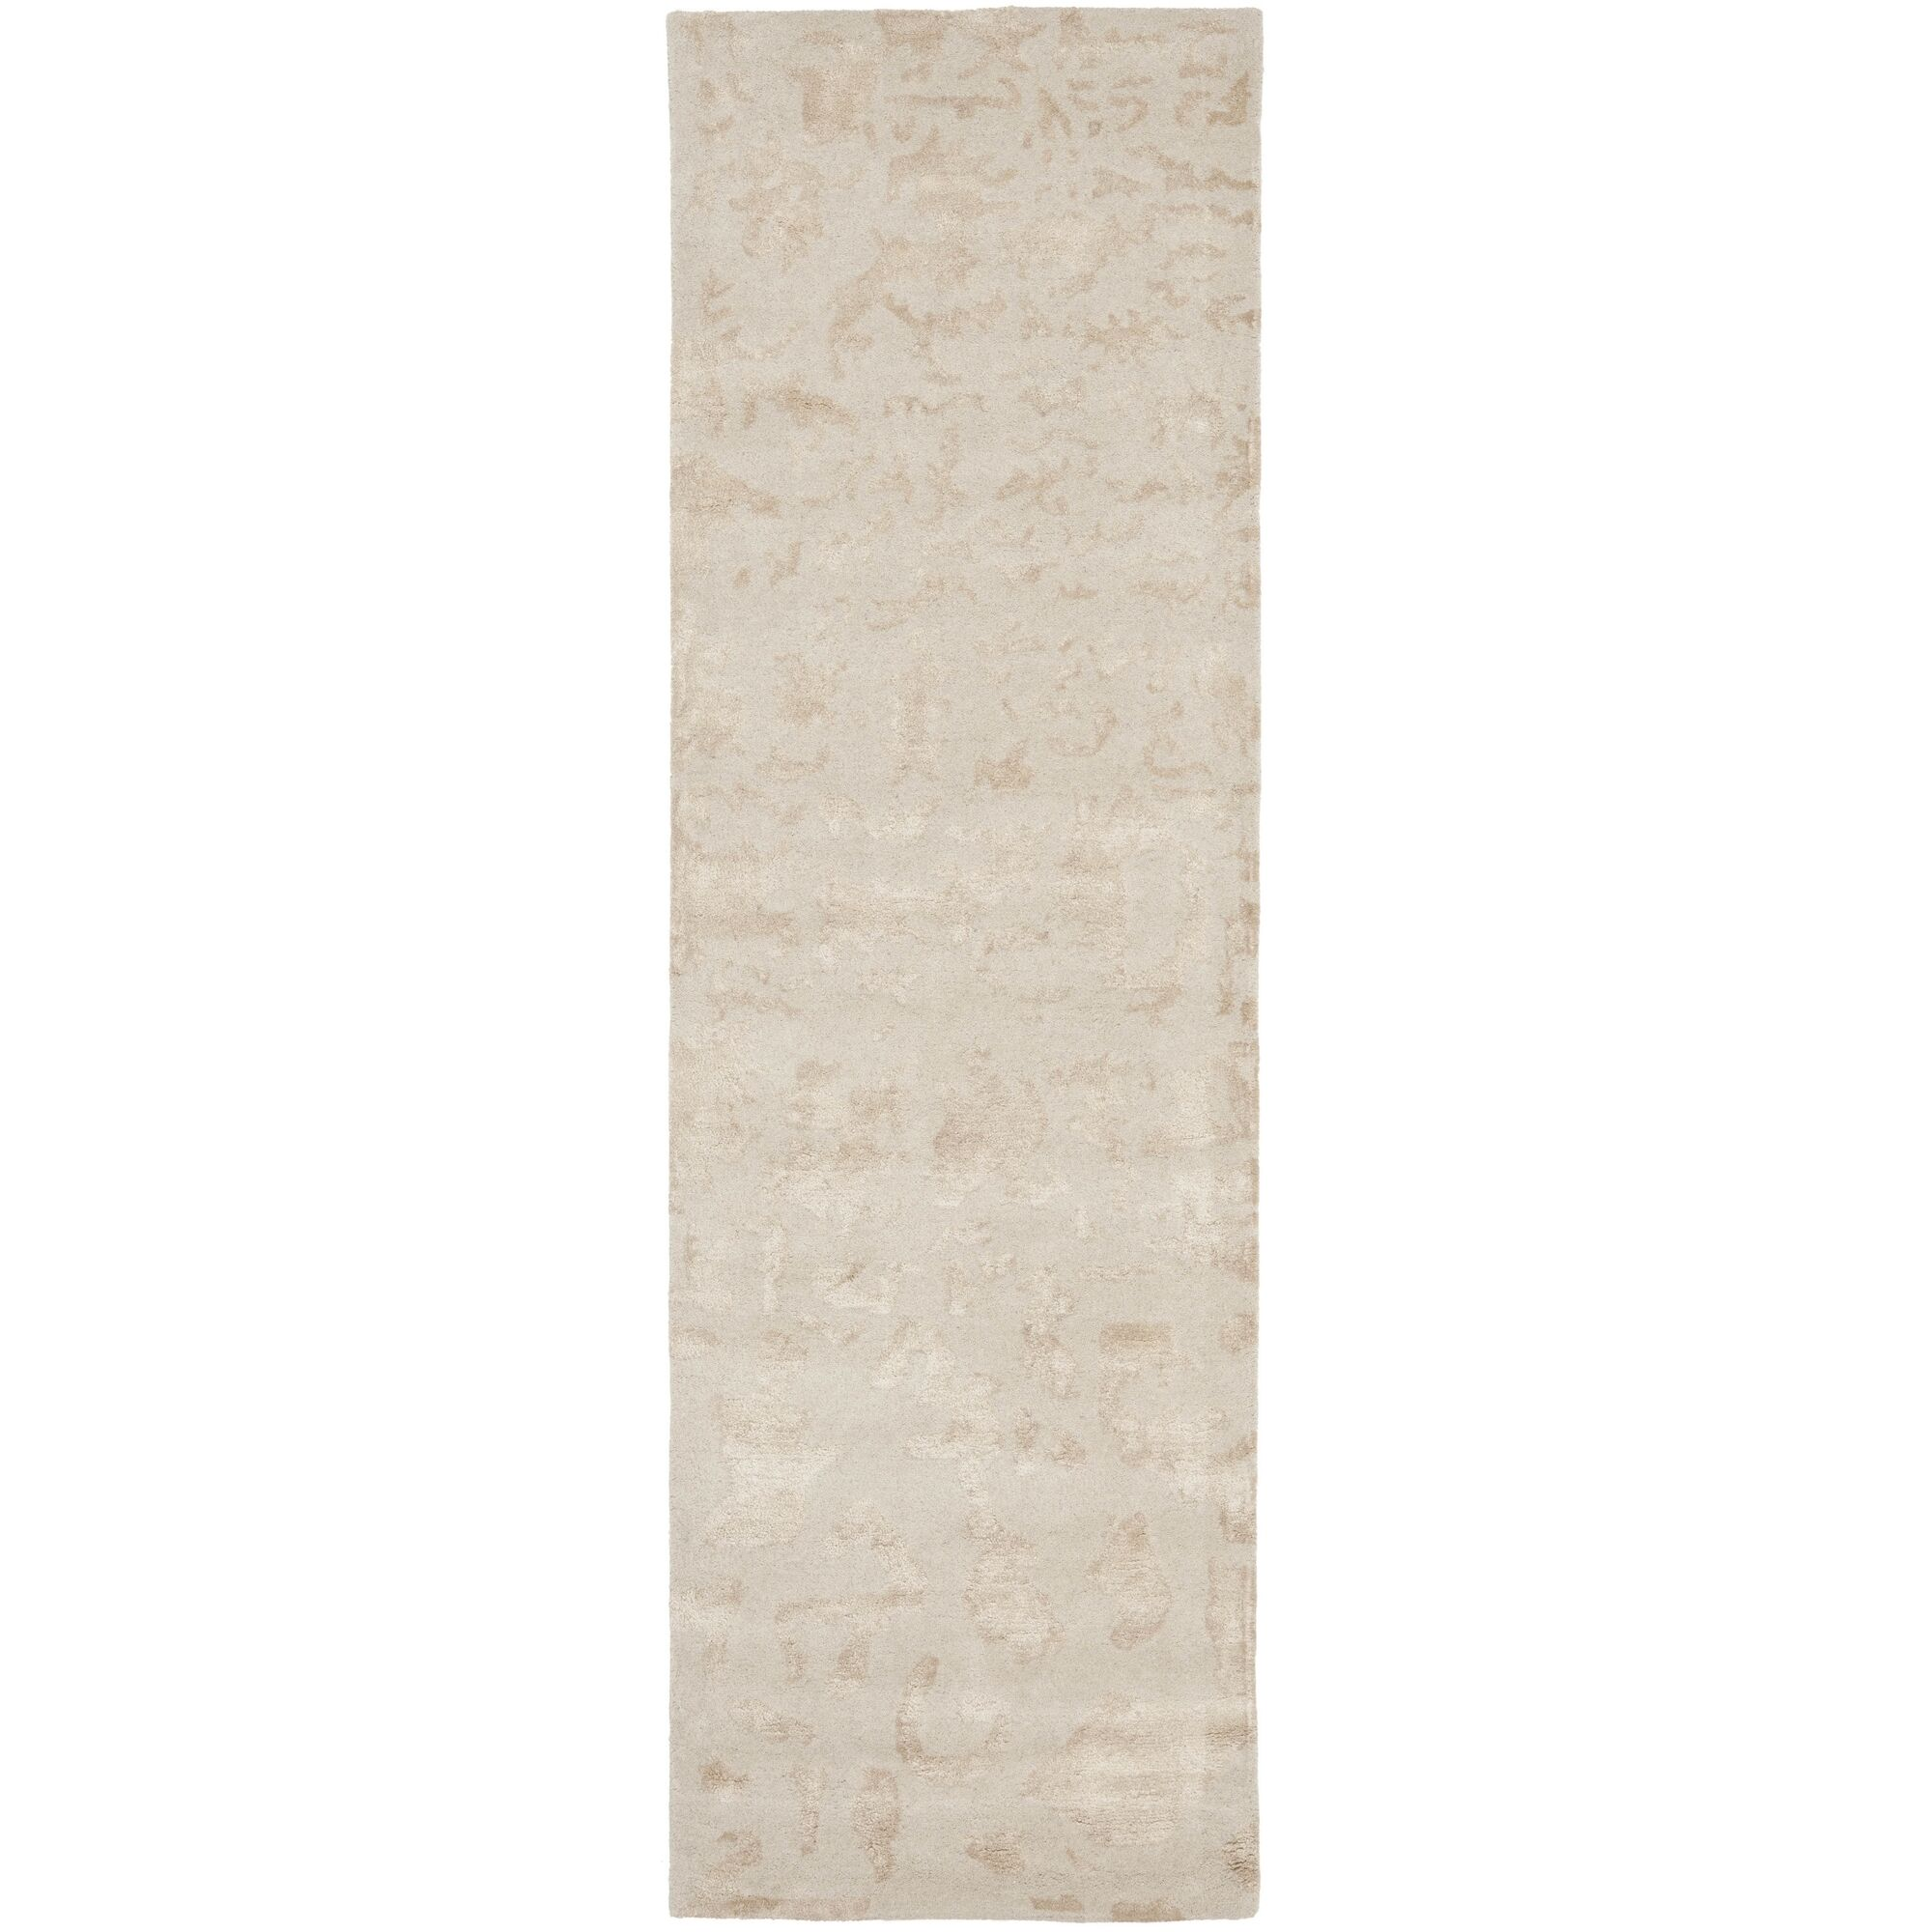 Beacon Hand-Woven Wool Ivory Area Rug Rug Size: Runner 2'6